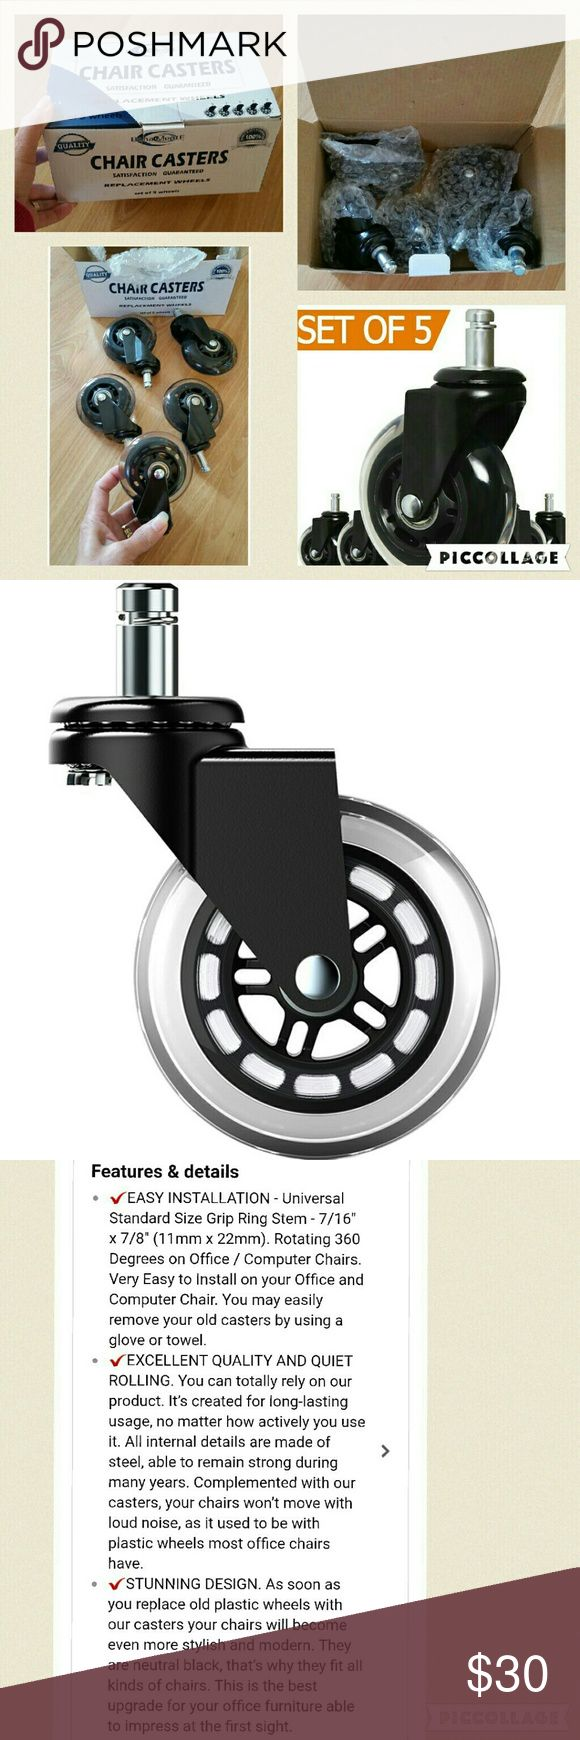 CHAIR CASTERS REPLACEMENT WHEELS BRAND NEW : Office Chair Casters Wheels Replacement - Set of 5 - NEW 2017 Model - Rollerblade Style. Clear Polyurethane Material - SAFE for Hardwood Floors & Carpet. Universal Easy Installation.  CHECK OUT MY OTHER LISTINGS FOR MORE BRAND NEW VARIETY ITEM'S WITH STILL ON EACH ORIGINAL PACKAGING! ! AND GET DISCOUNT WHEN BUNDLING...JUST MESSAGE ME ANYTIME! HAPPY SHOPPING! Accessories